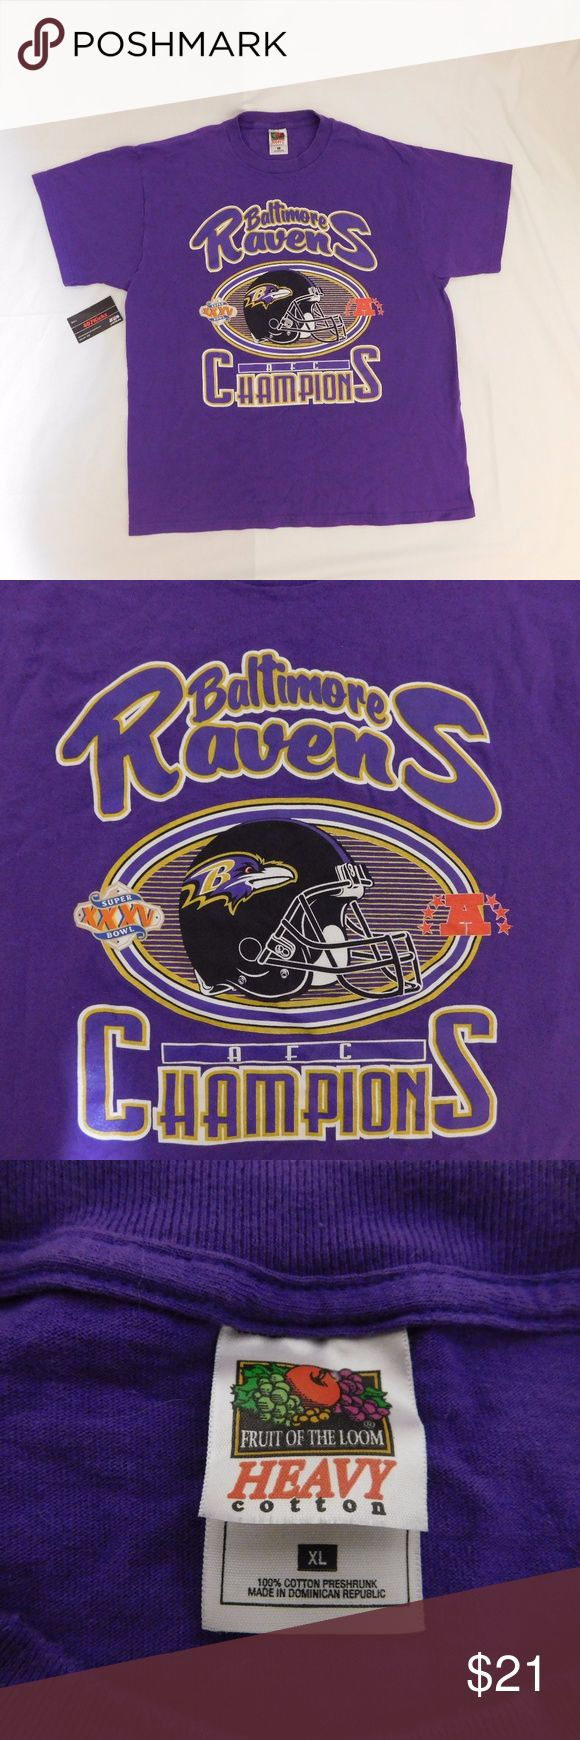 Baltimore Ravens AFC Champions T Shirt USED NFL Baltimore Ravens AFC Champions Super Bowl XXXV Purple Graphic T Shirt | MENS Size XL | Great condition, no flaws  For Discounts Follow Me on Instagram @407vintage !  KEYWORDS/TAGS: ultra boost , Tommy Hilfiger , Polo Sport , Nautica , NMD , supreme , kith , bred , adidas , banned , french blue , stussy , Maestro , vintage , kaws , solefly , trophy room , box logo , gamma blue , retro jordan , steal , foams , foamposite , rare , nike air , yeezy…